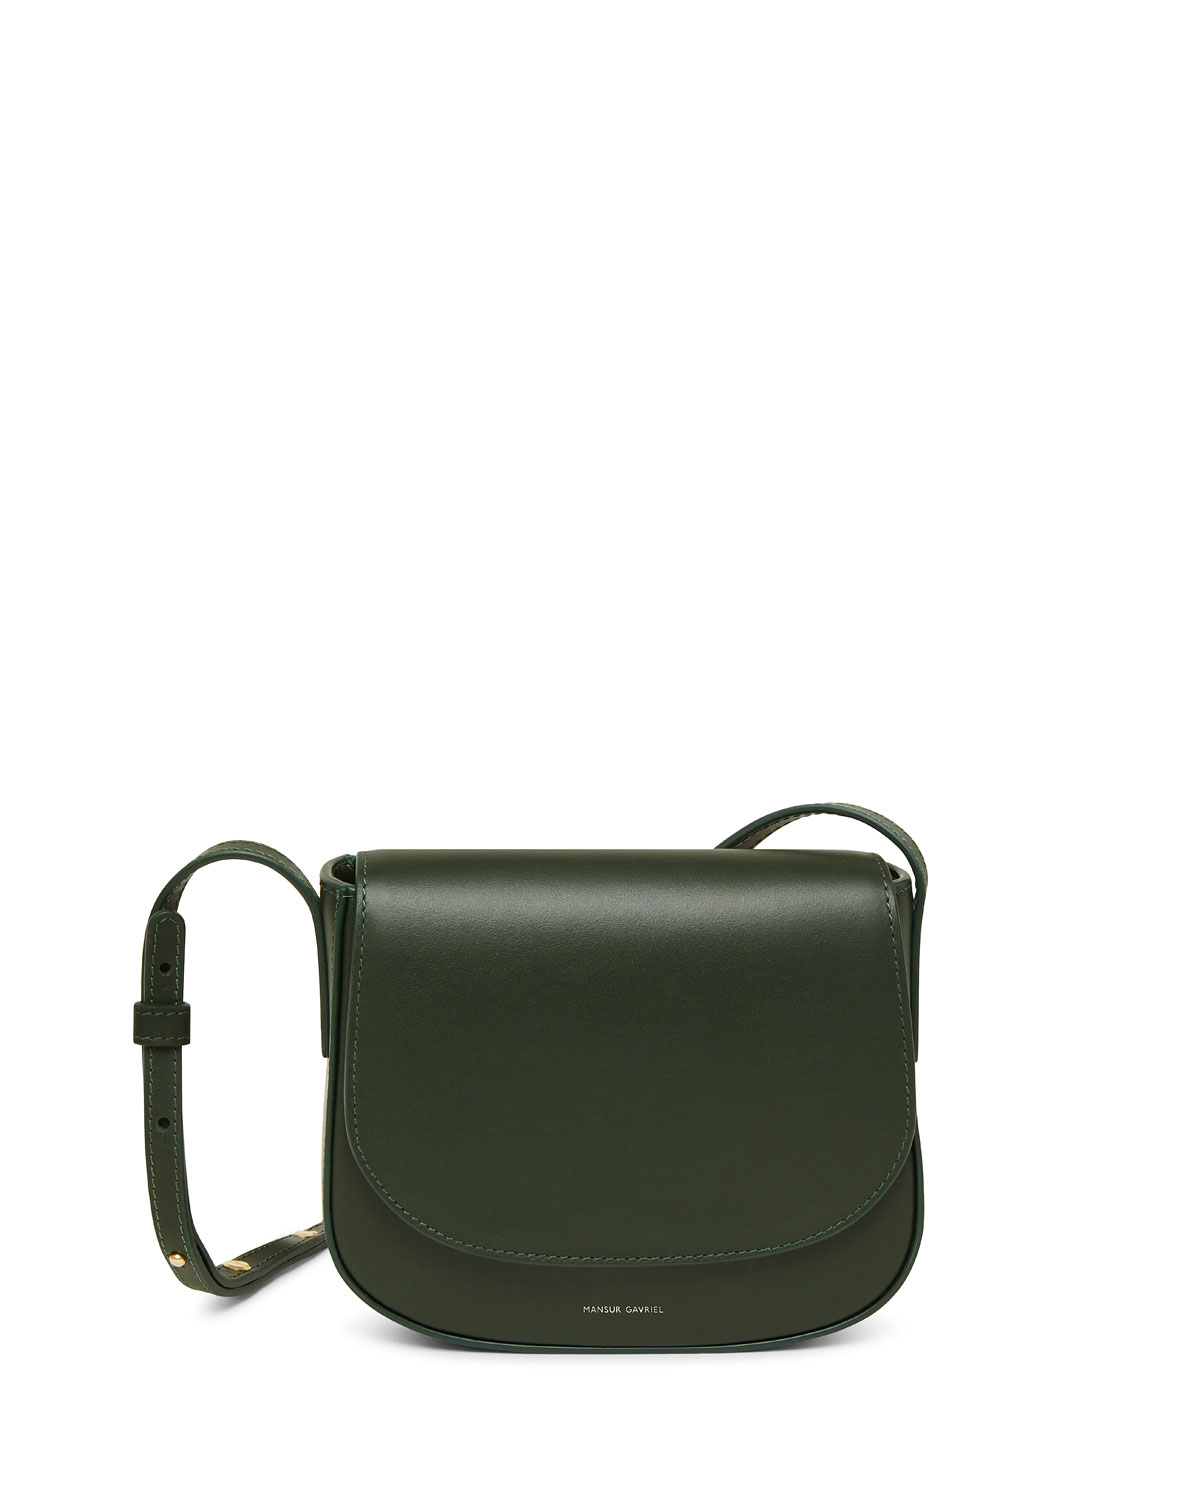 Quick Look Mansur Gavriel Mini Flap Leather Crossbody Bag Available In Green